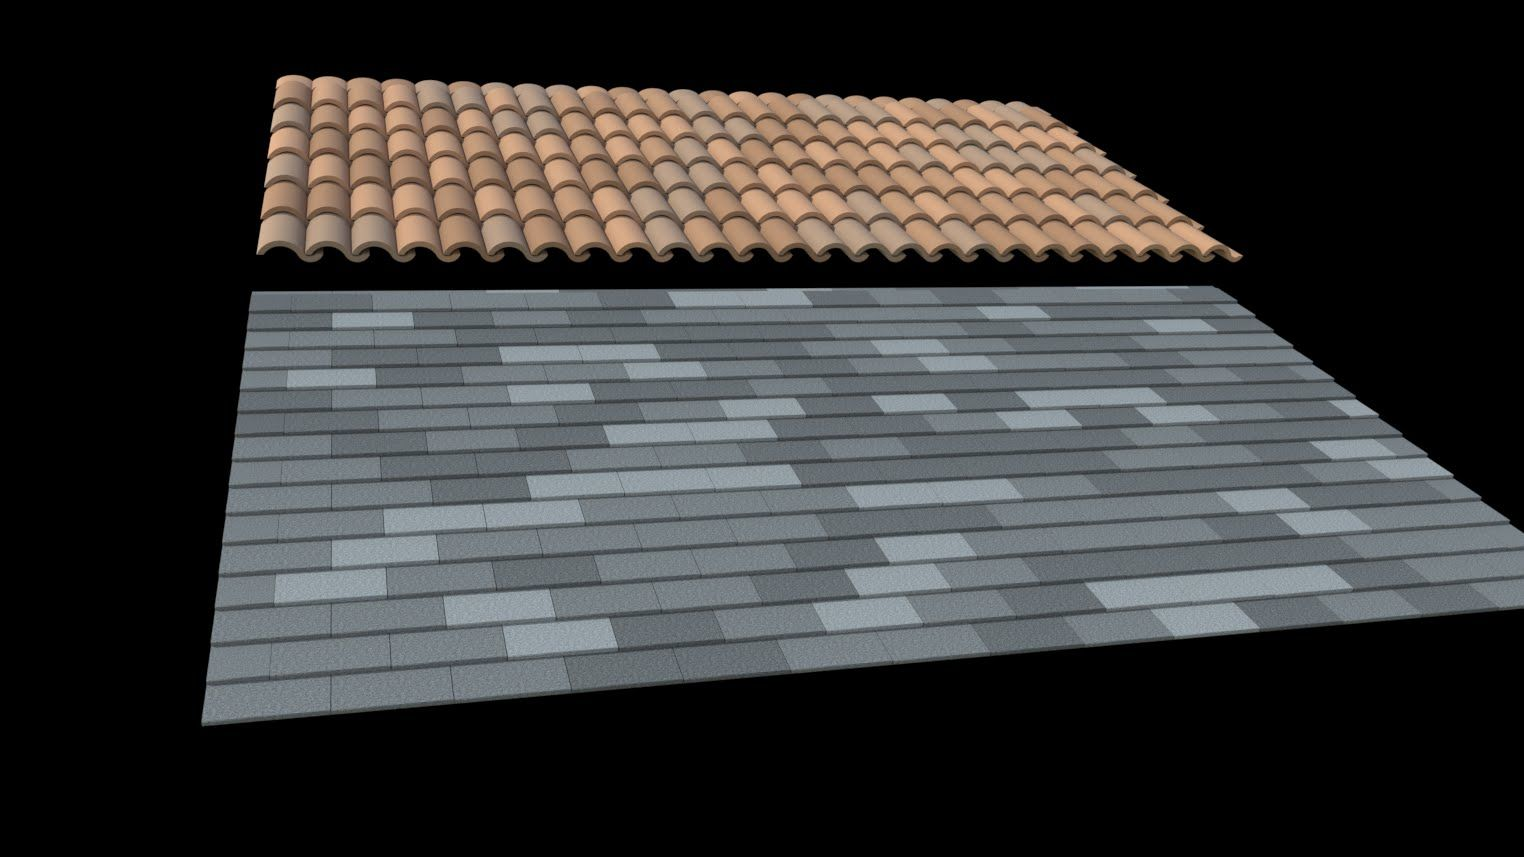 Sketchup Fast 3d Roof Tiles And Shingles